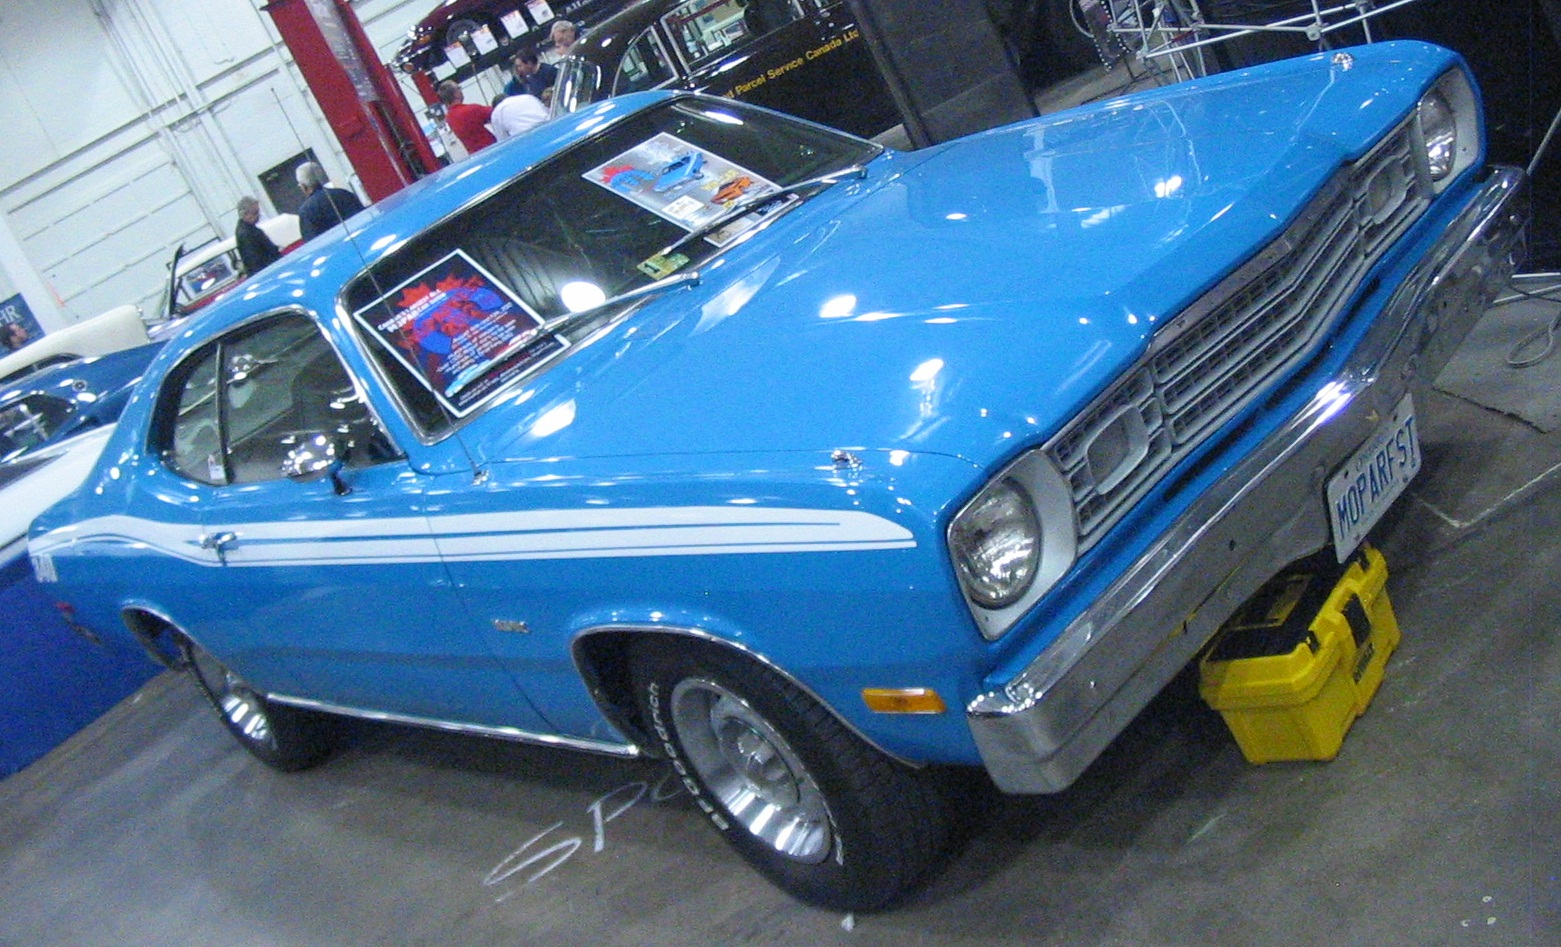 File:Plymouth Duster (Toronto Spring \'12 Classic Car Auction).JPG ...